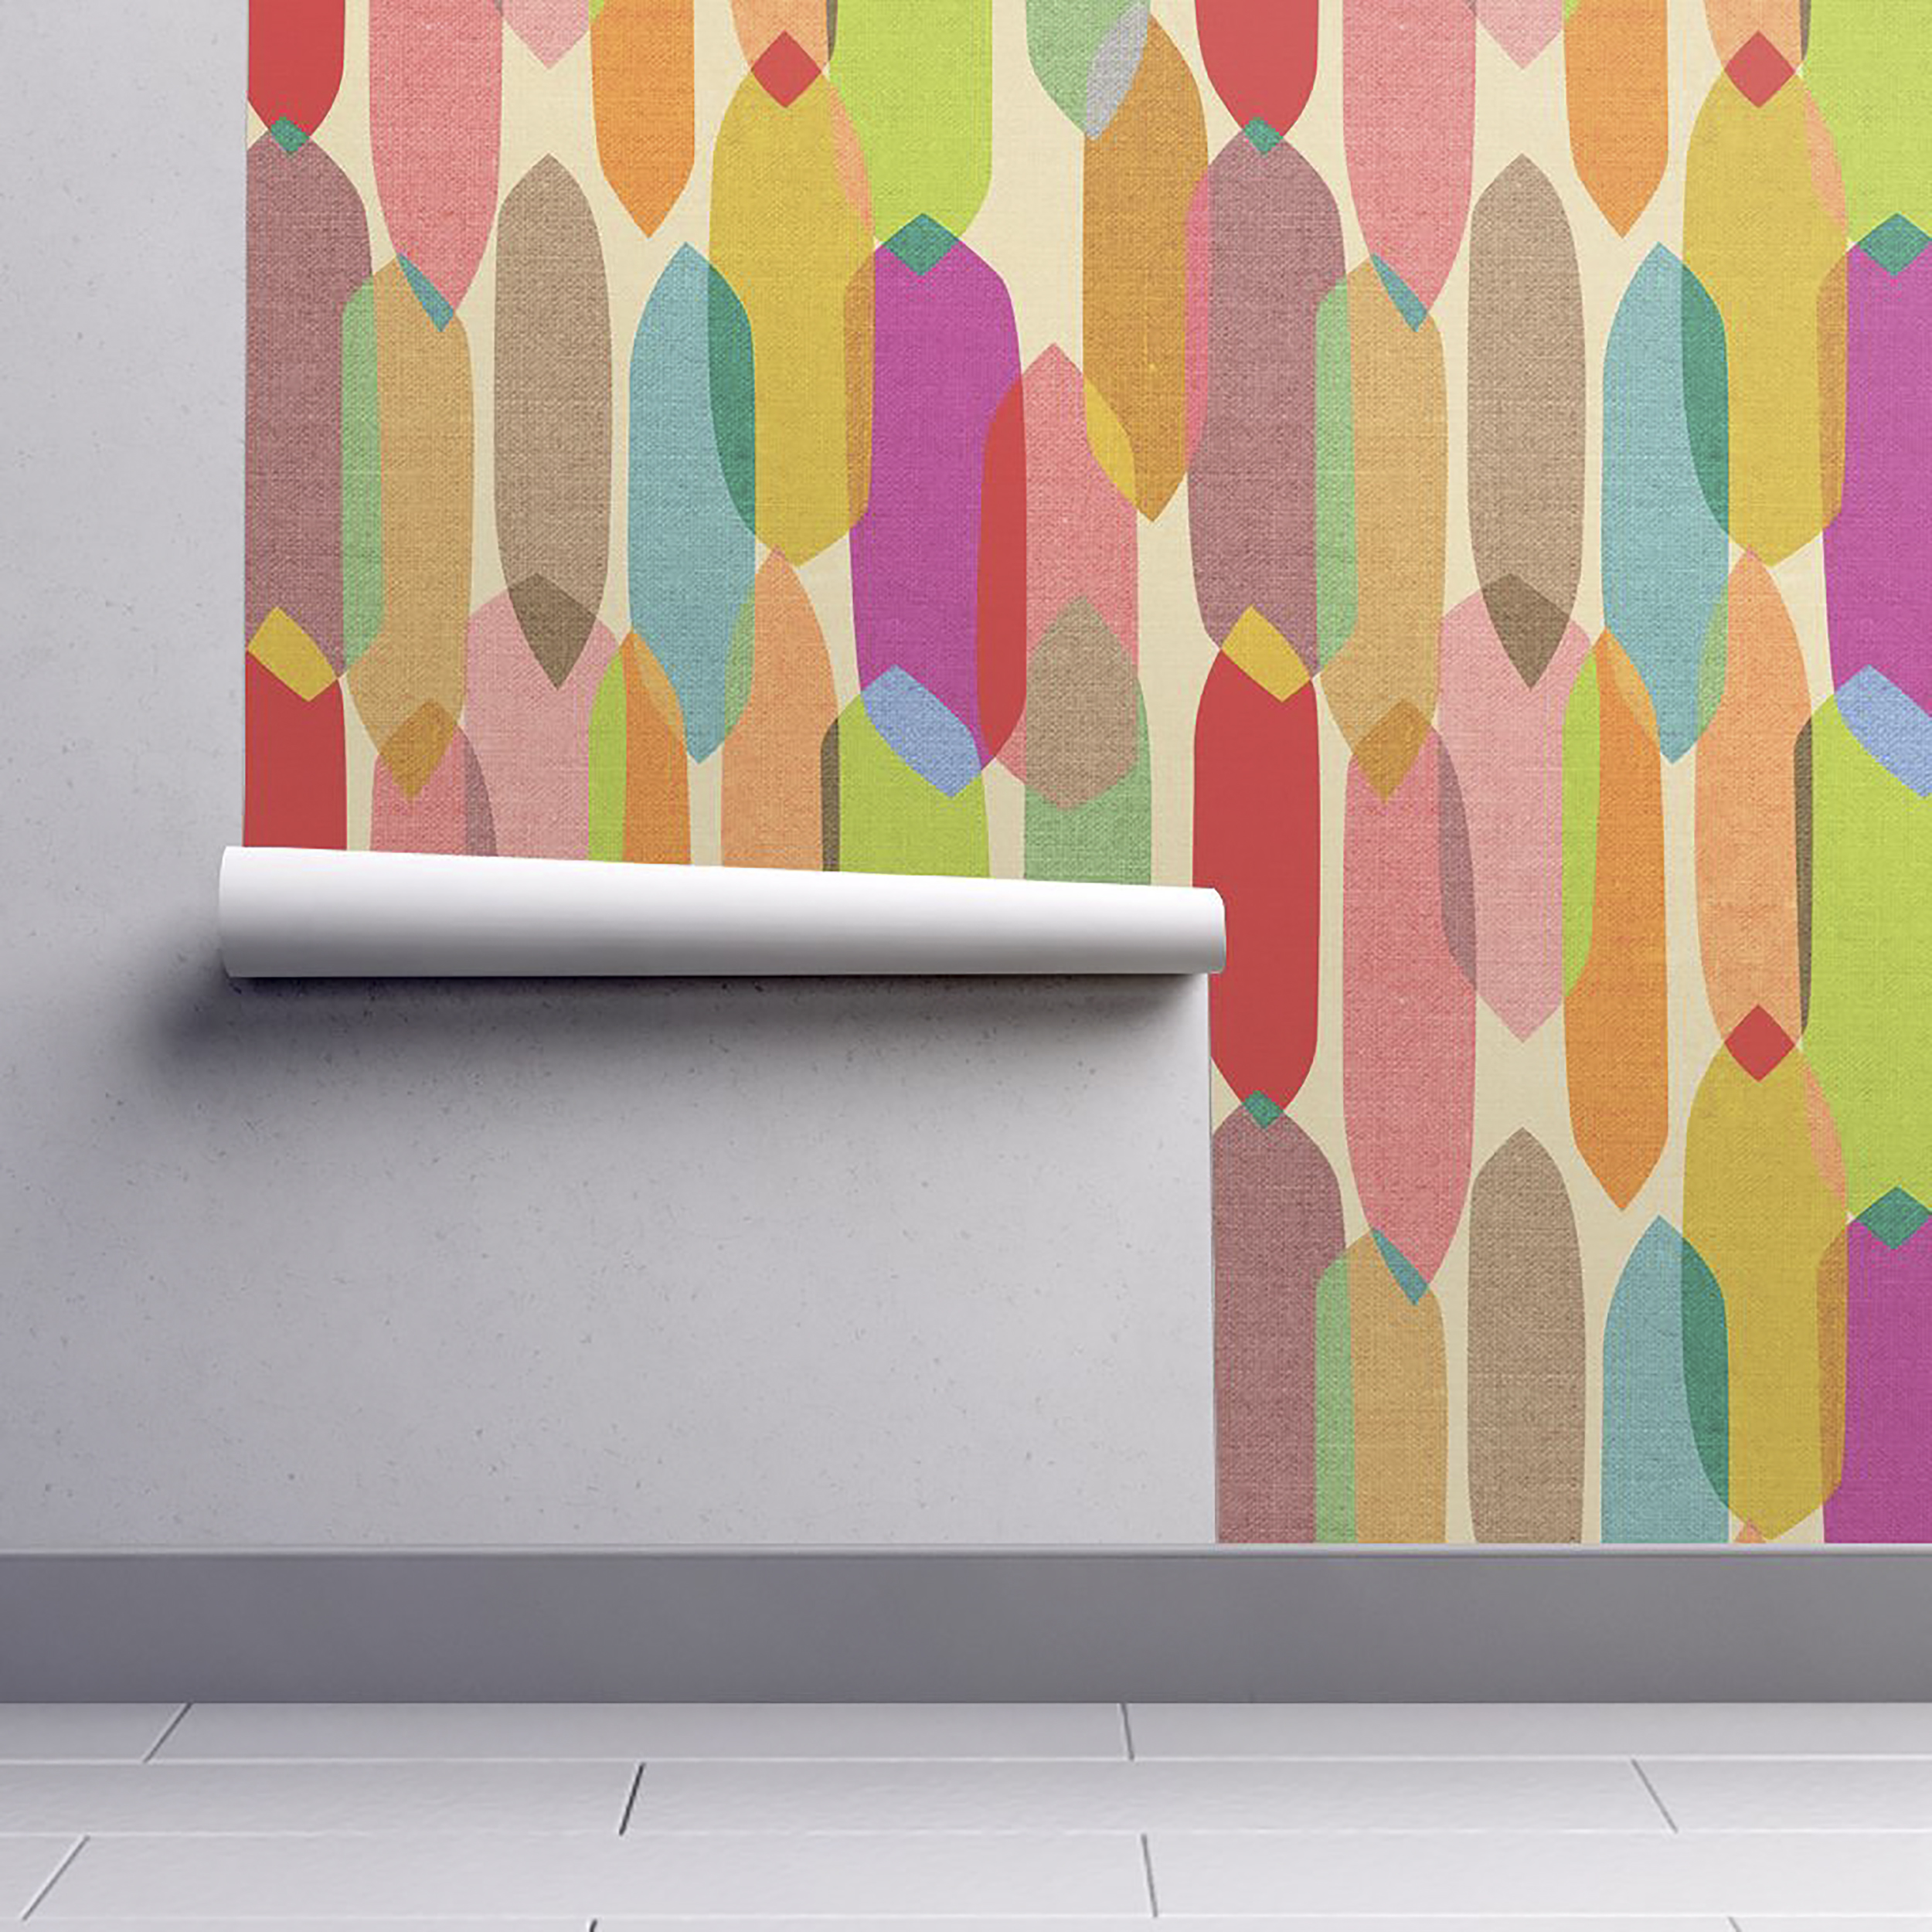 Midcentury modern wallpaper lets you live out your 1950s dreams